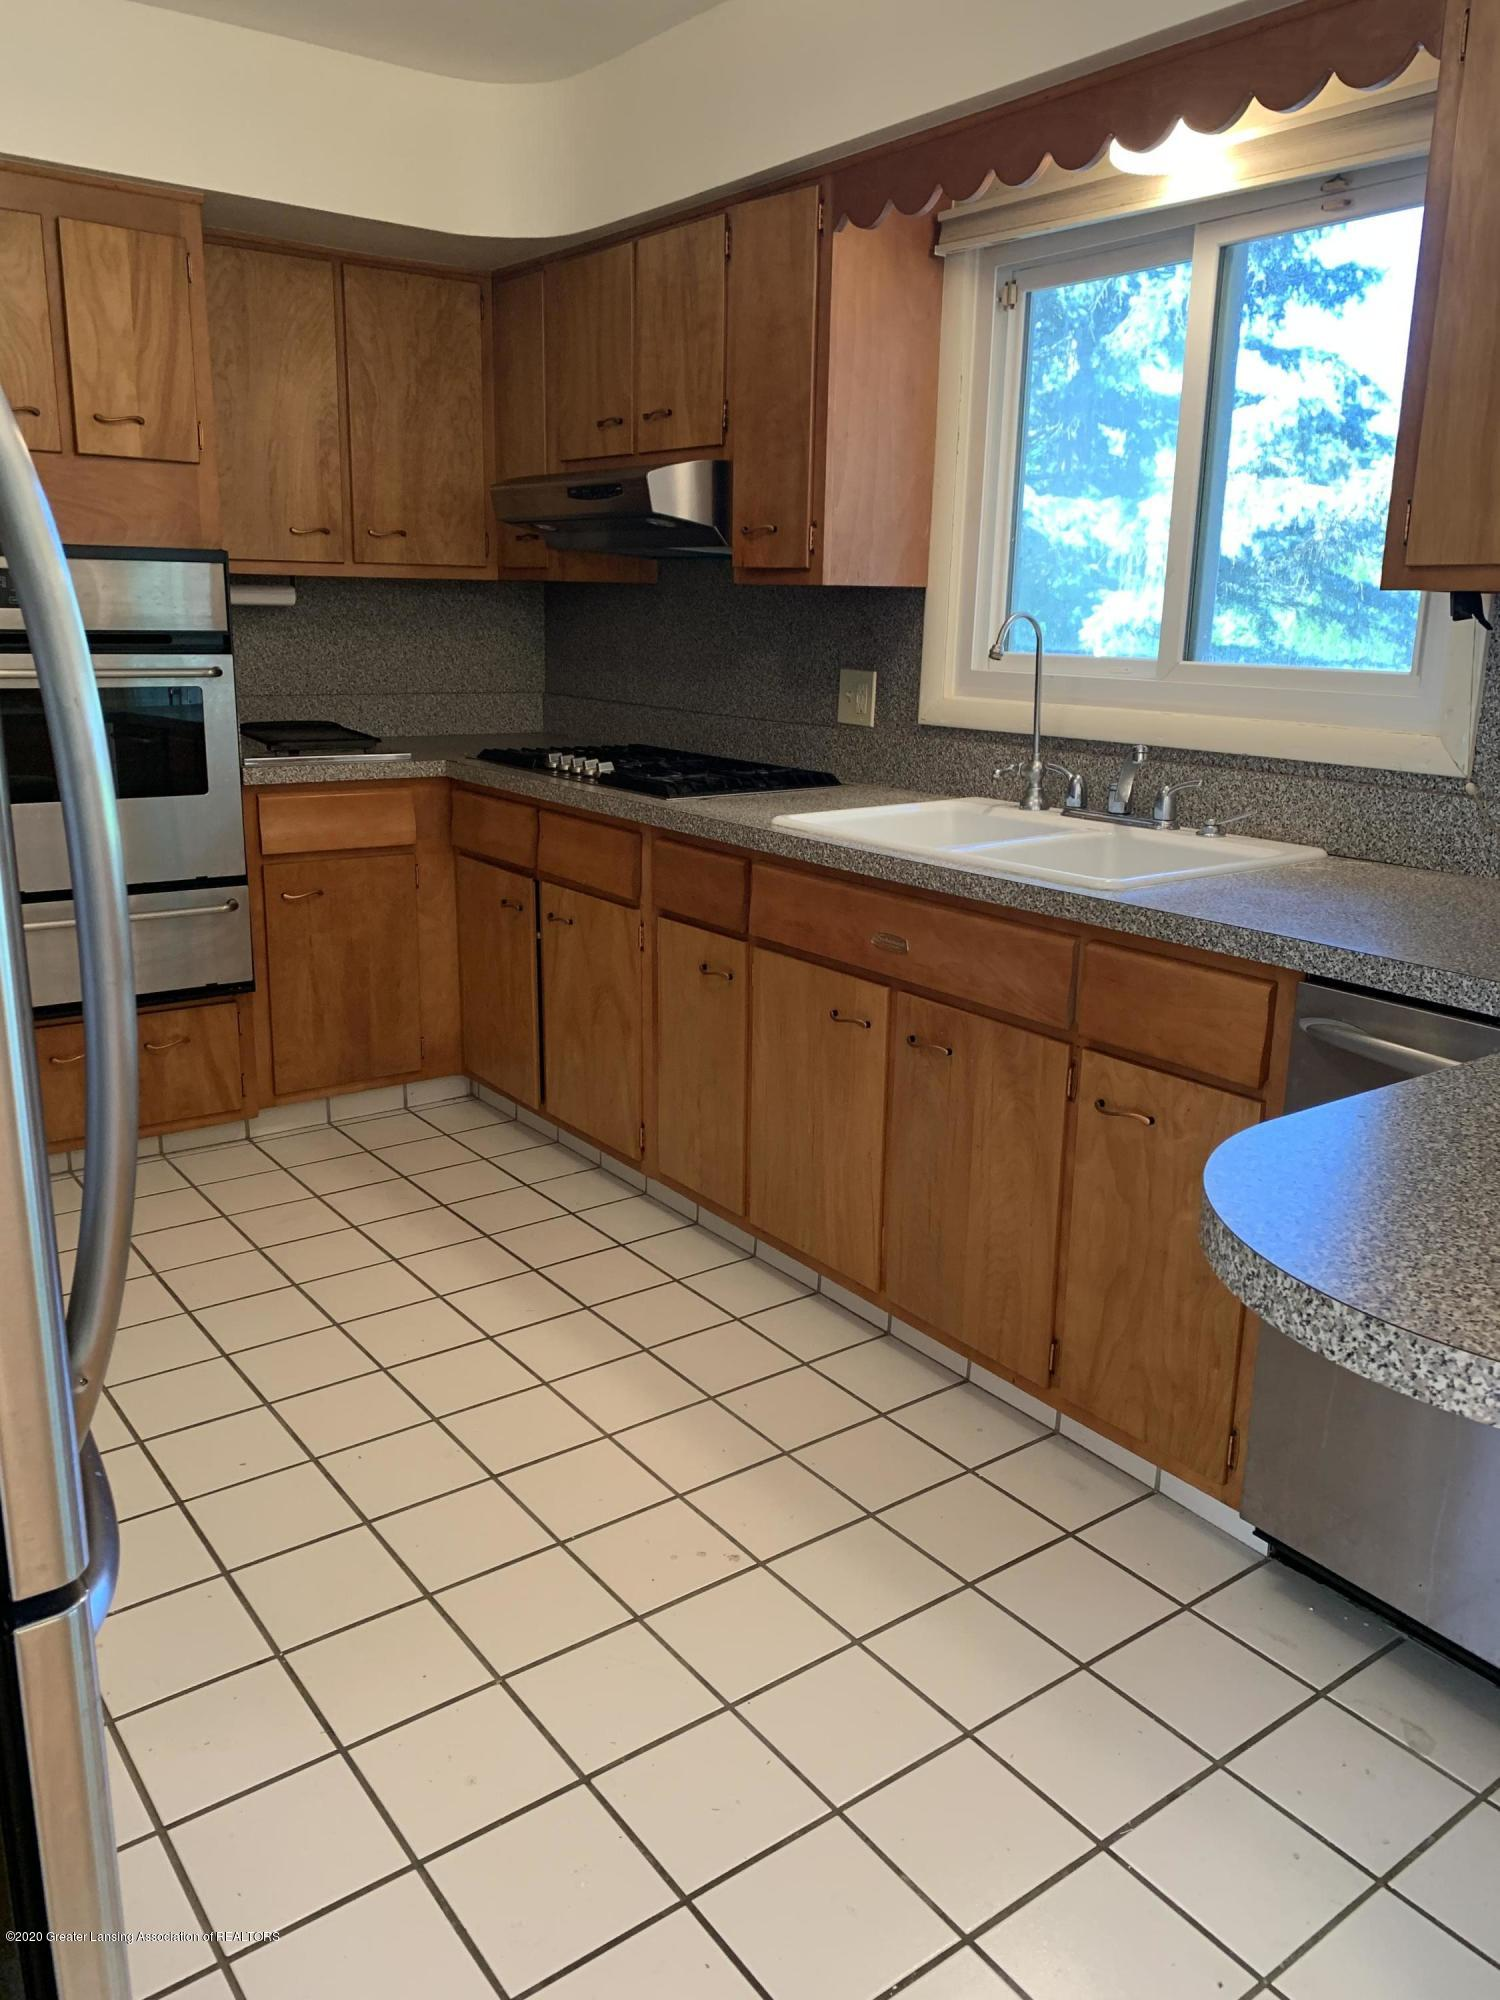 516 Woodhaven Dr - 8526A2FA-33BE-4273-8699-946B8052BD32 - 5